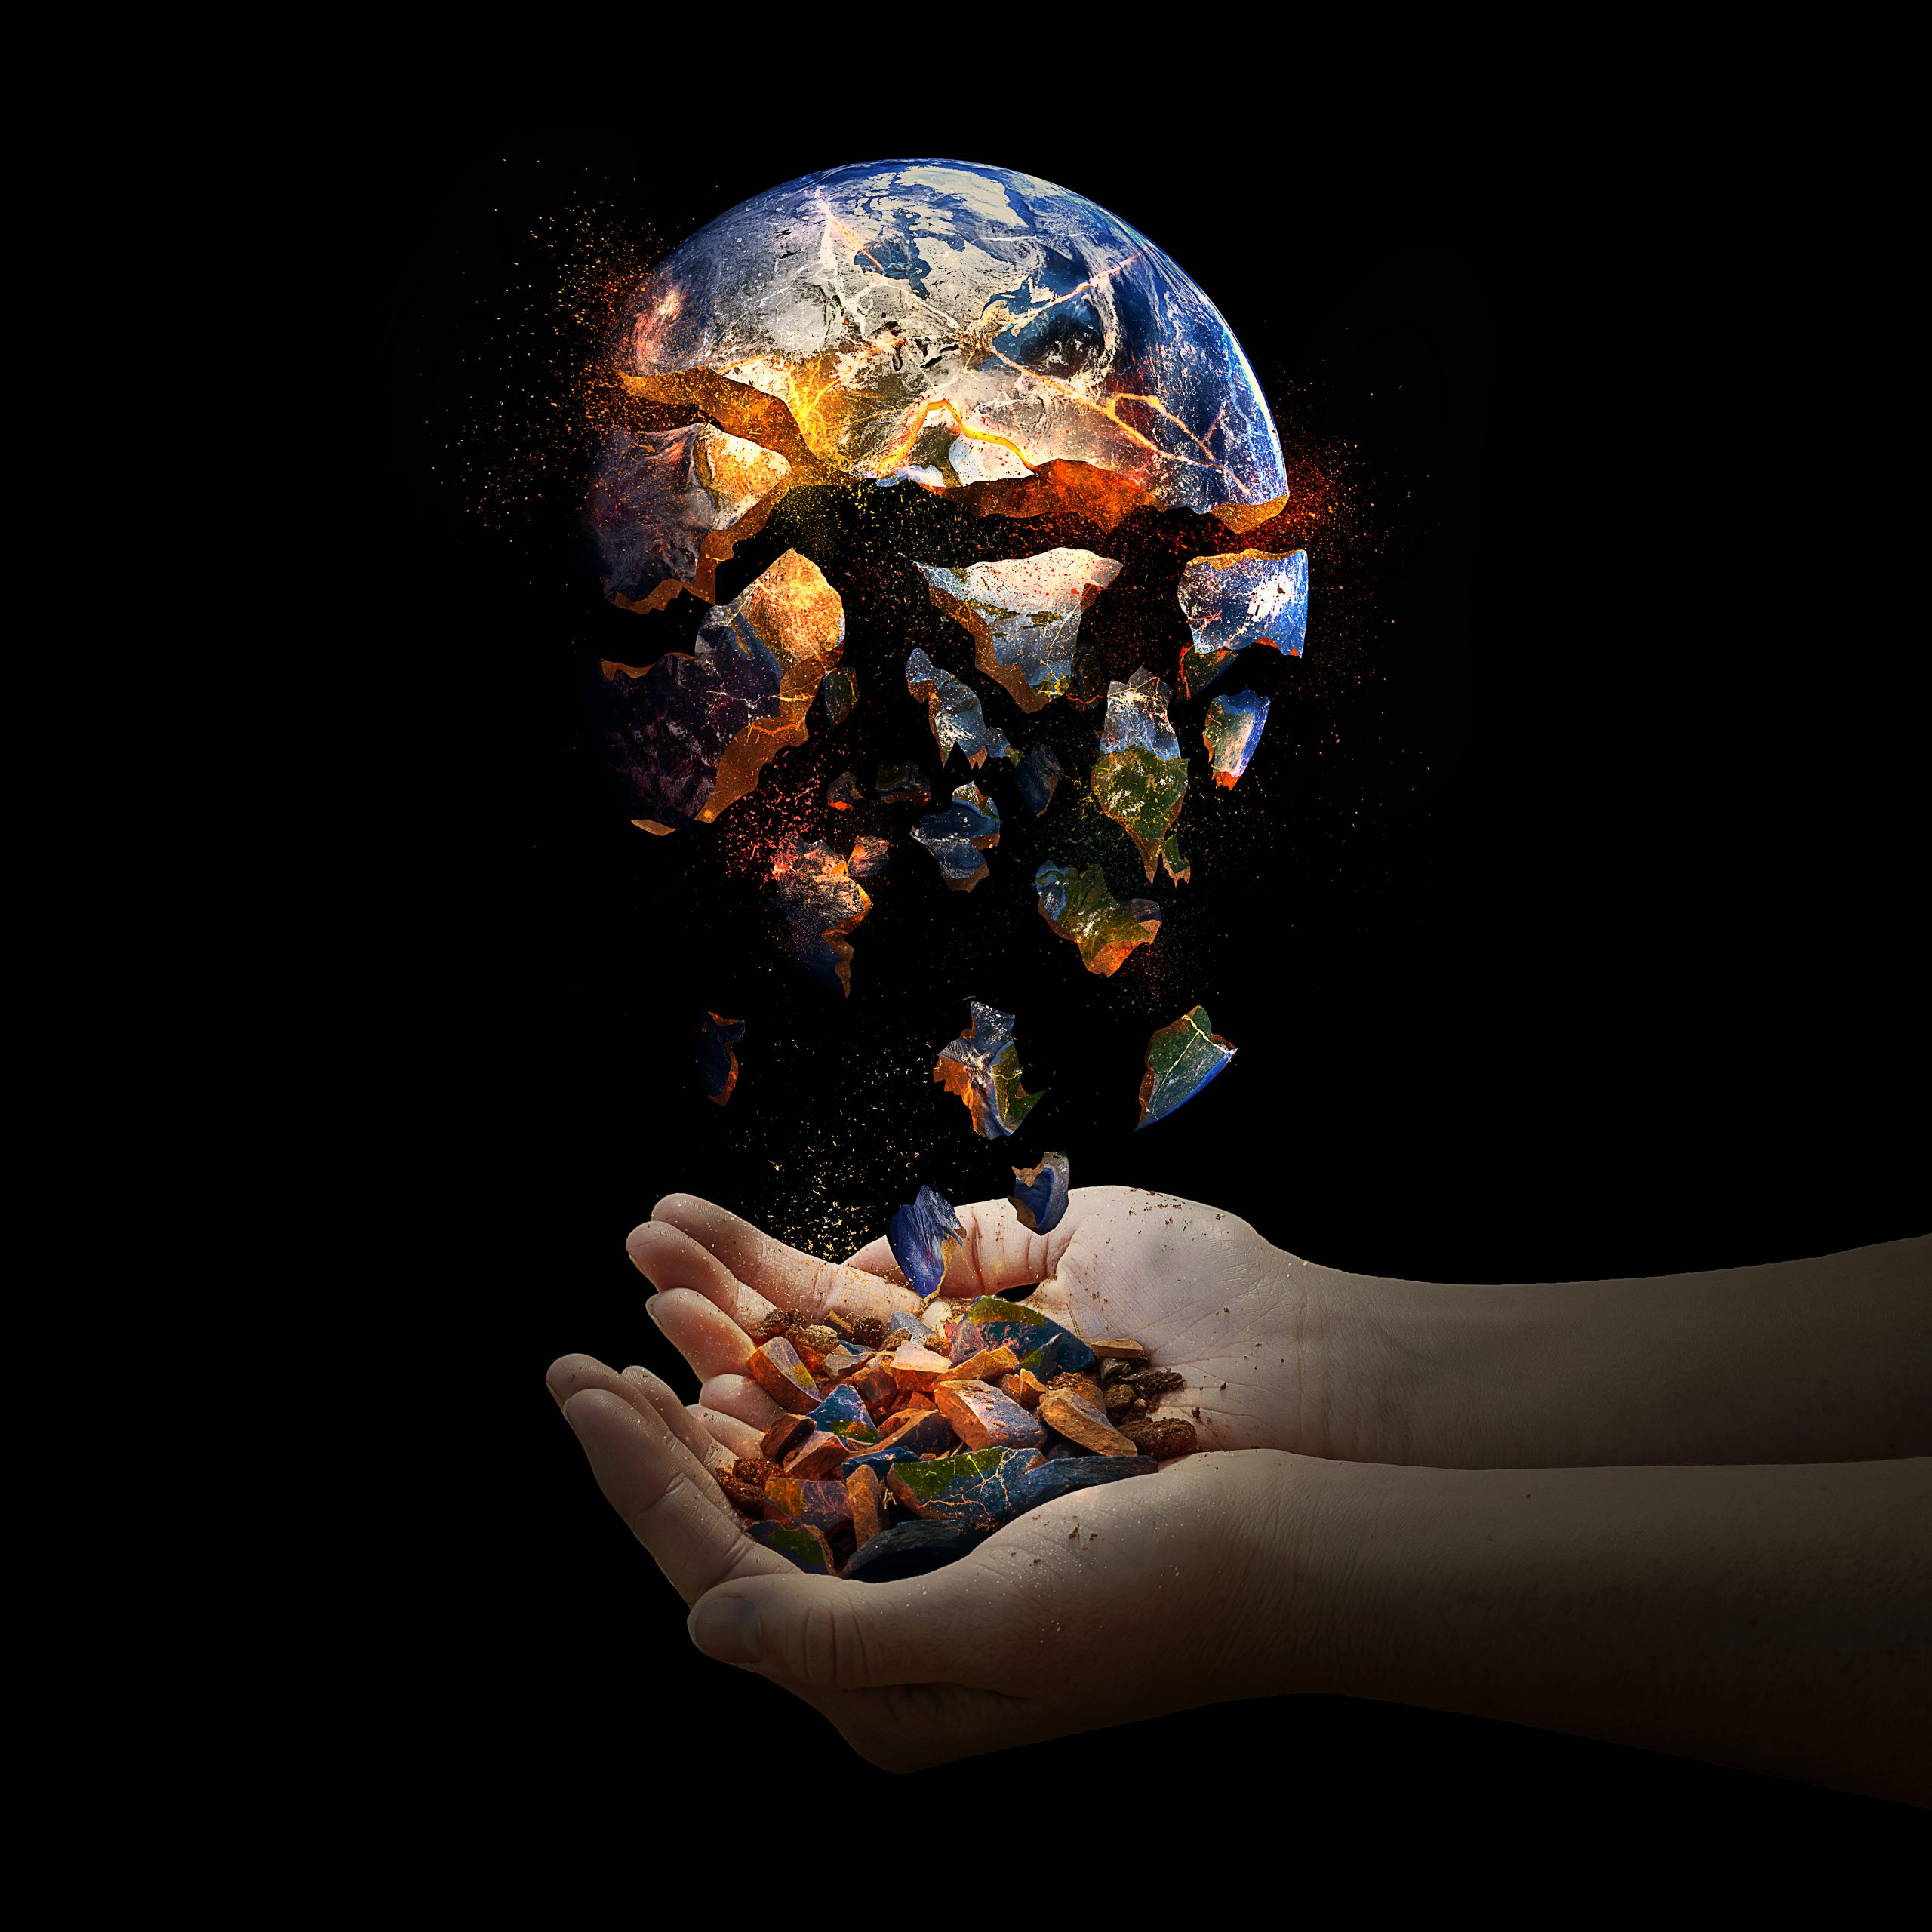 The whole world falls apart but two open hands catch the pieces.